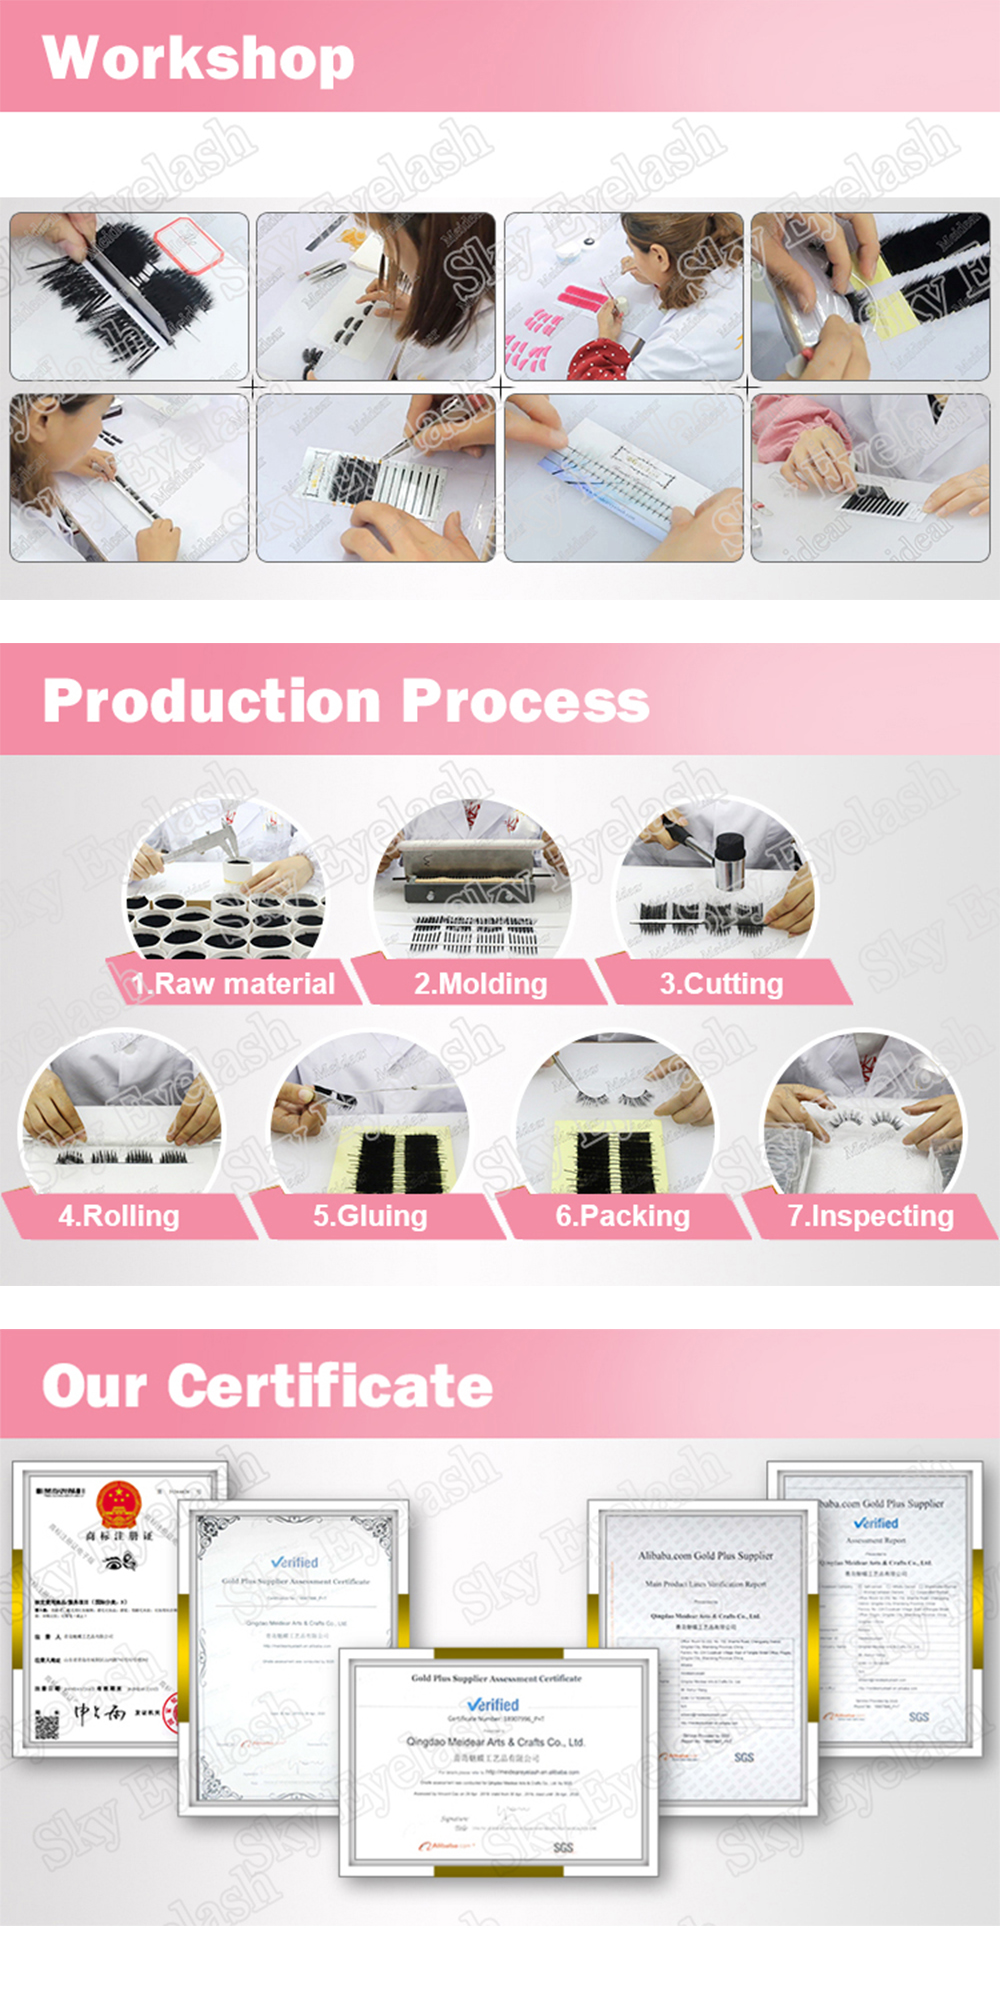 privte-label-lashes-wholesale.jpg